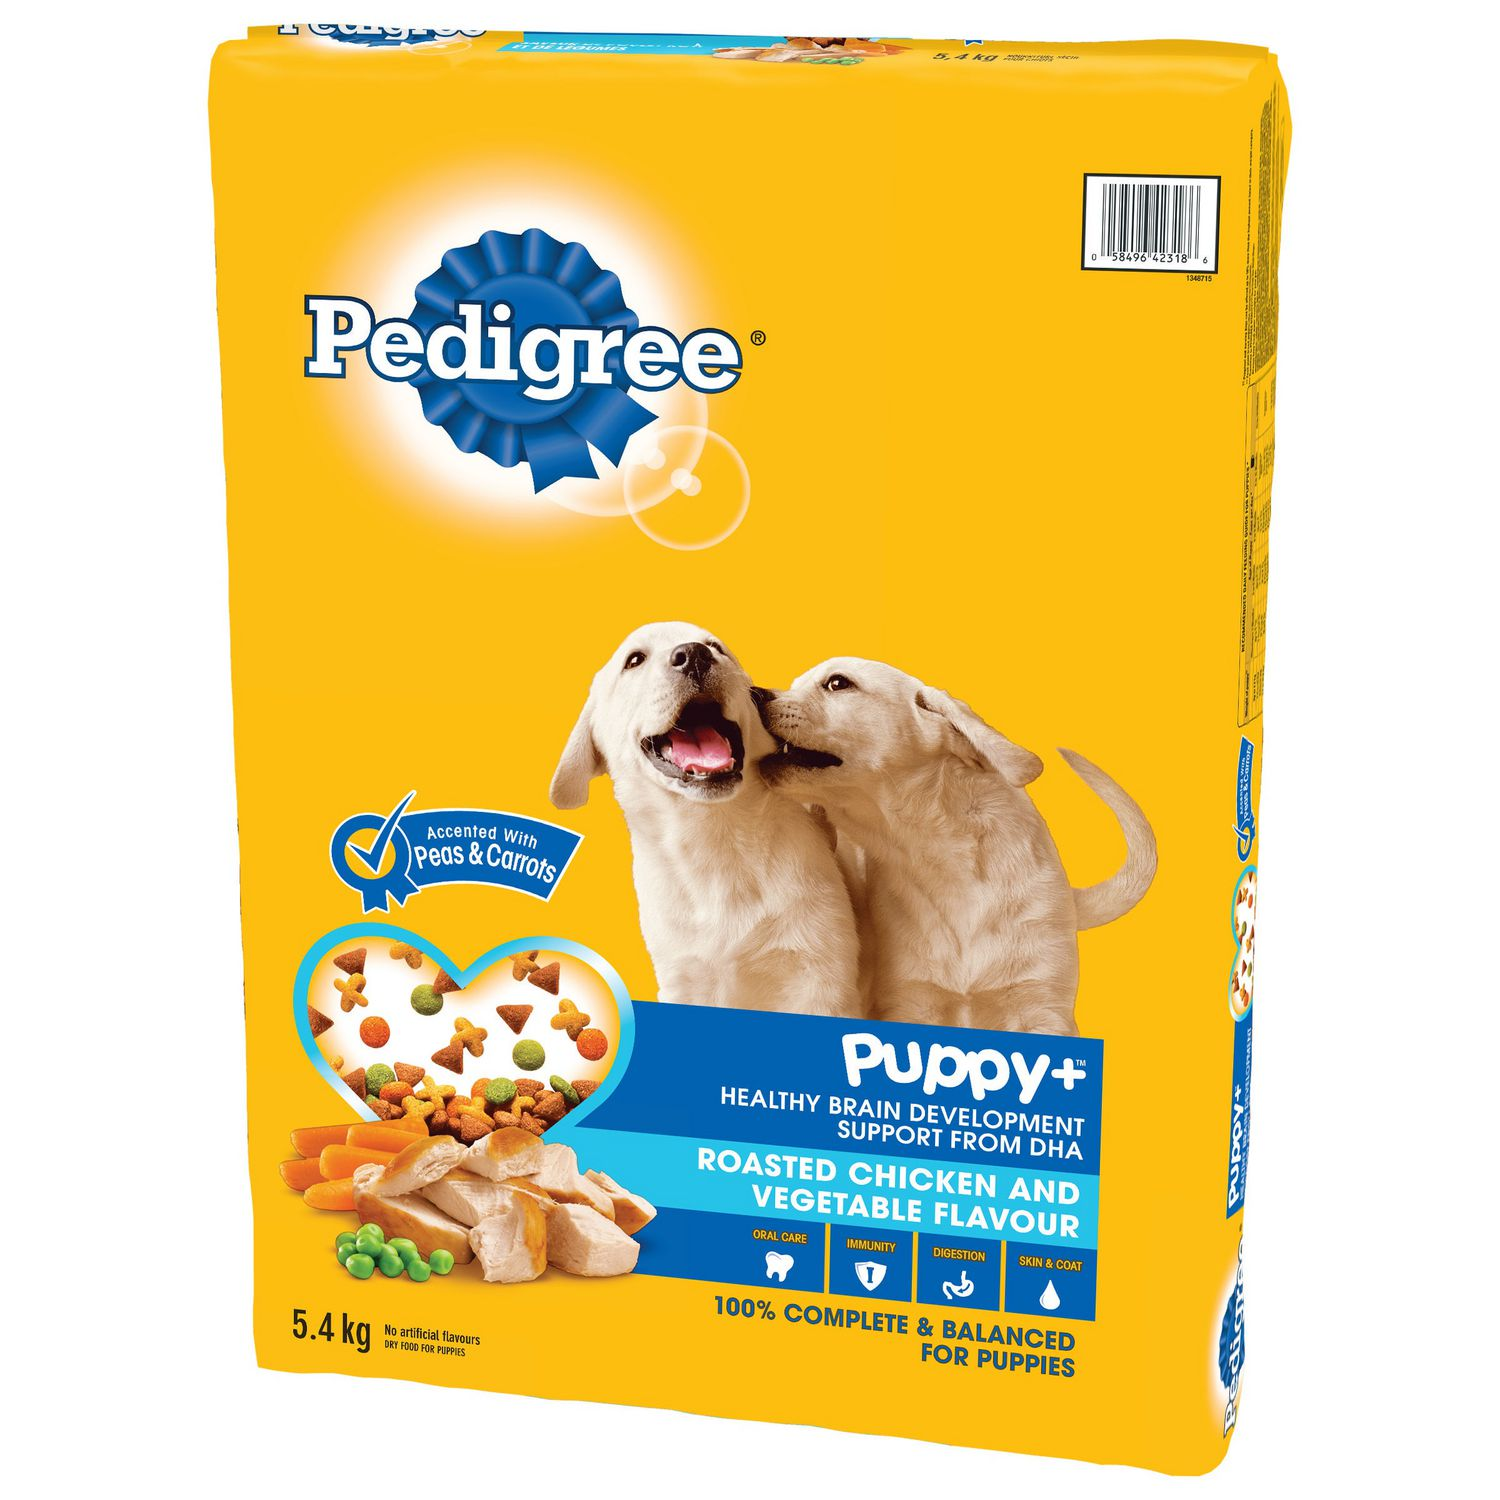 PEDIGREE® PUPPY+™ Roasted Chicken And Vegetable 5.4kg